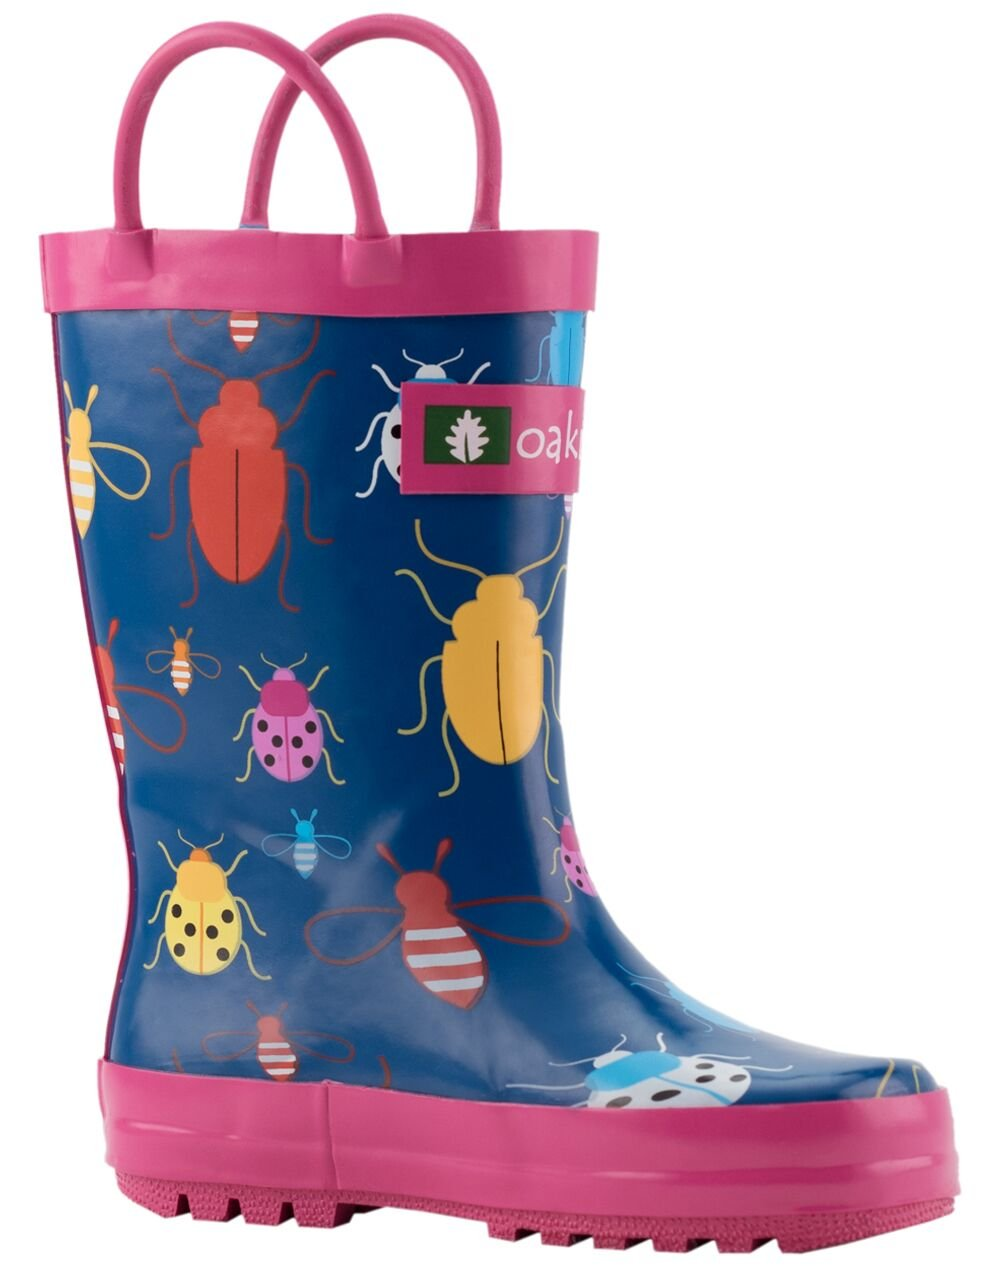 Oakiwear OAKI Kids Rubber Rain Boots with Handles, Bees & Ladybugs, 10T US Toddler